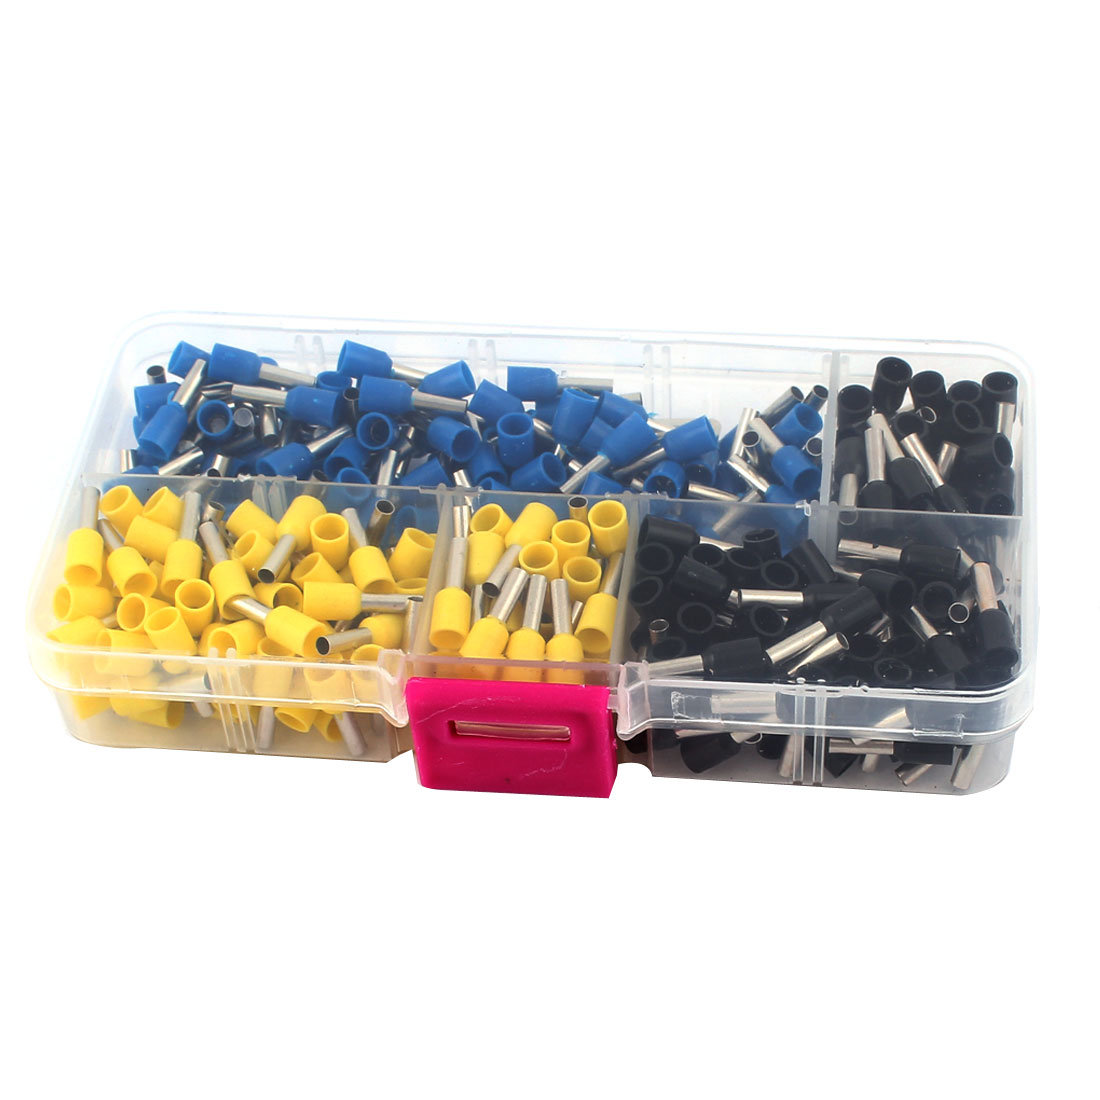 300 Pcs AWG14 Insulated Ferrule Terminal Wire Crimp Connector Assorted Set w Box